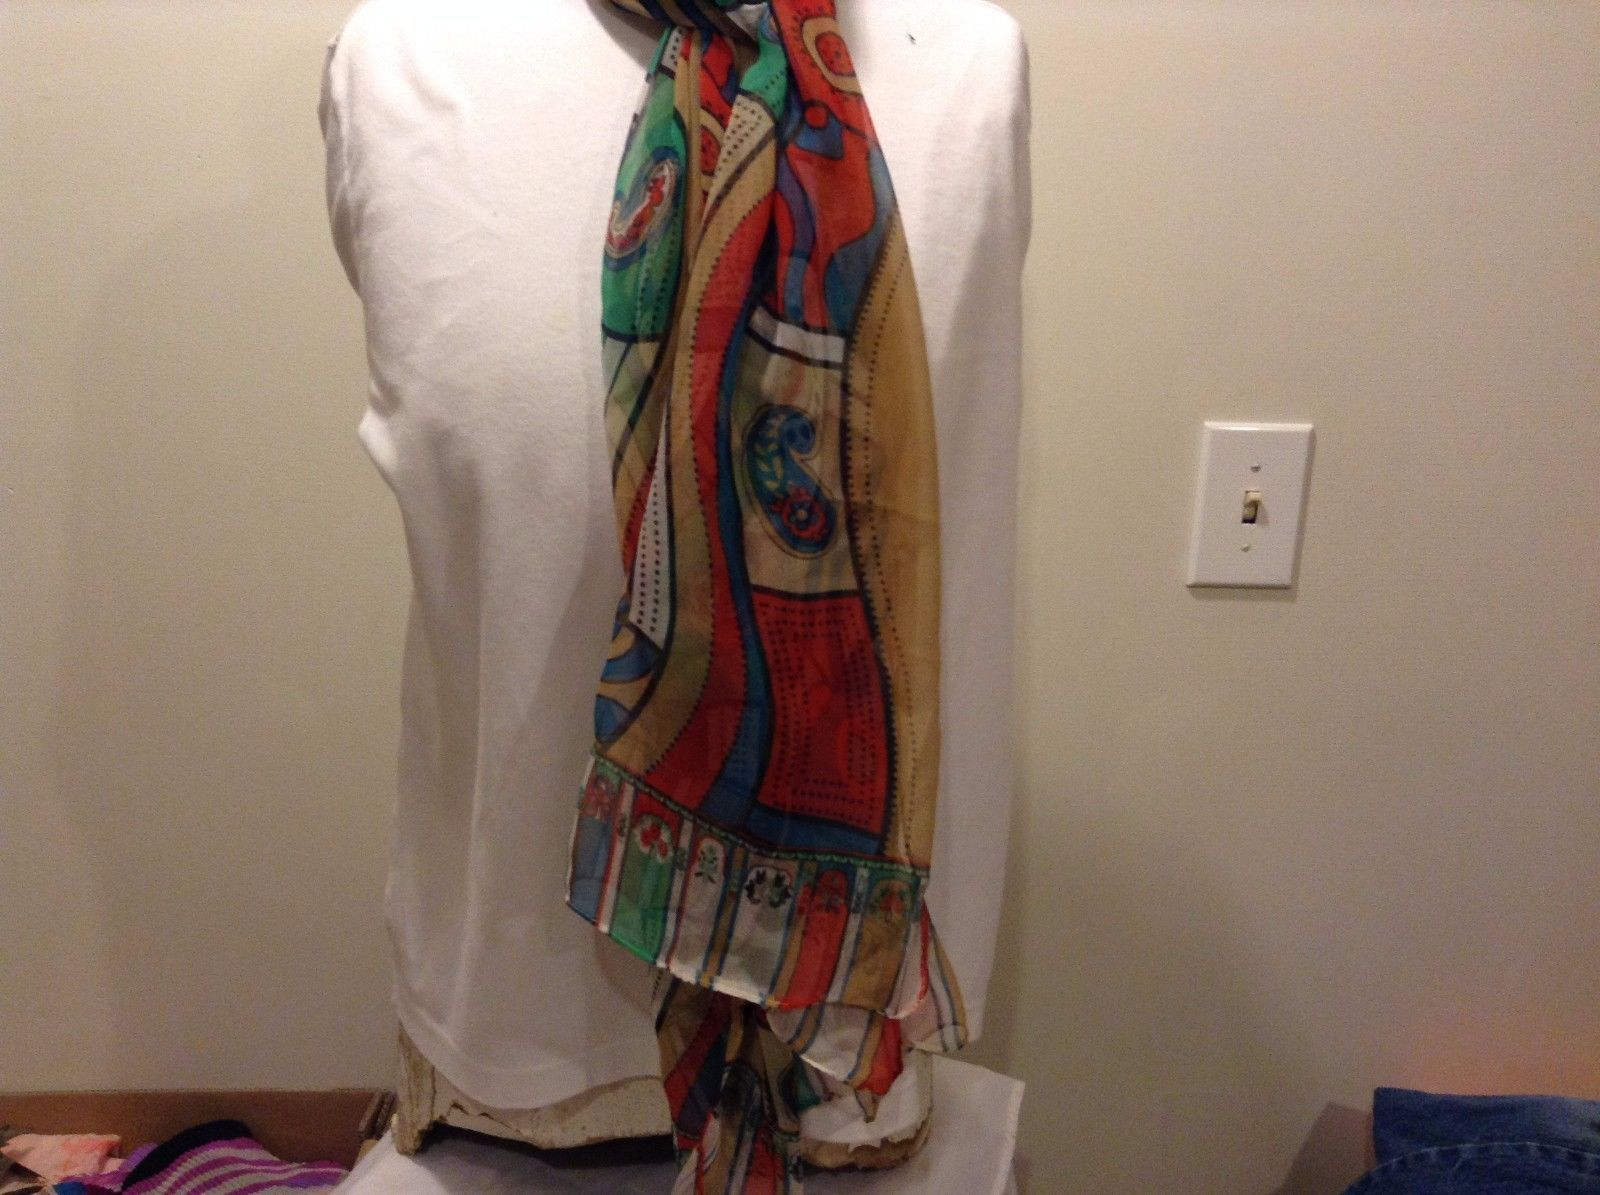 Tan Green Red Blue White Black Stripes Circles Flowers Trim Scarf 100% Polyester